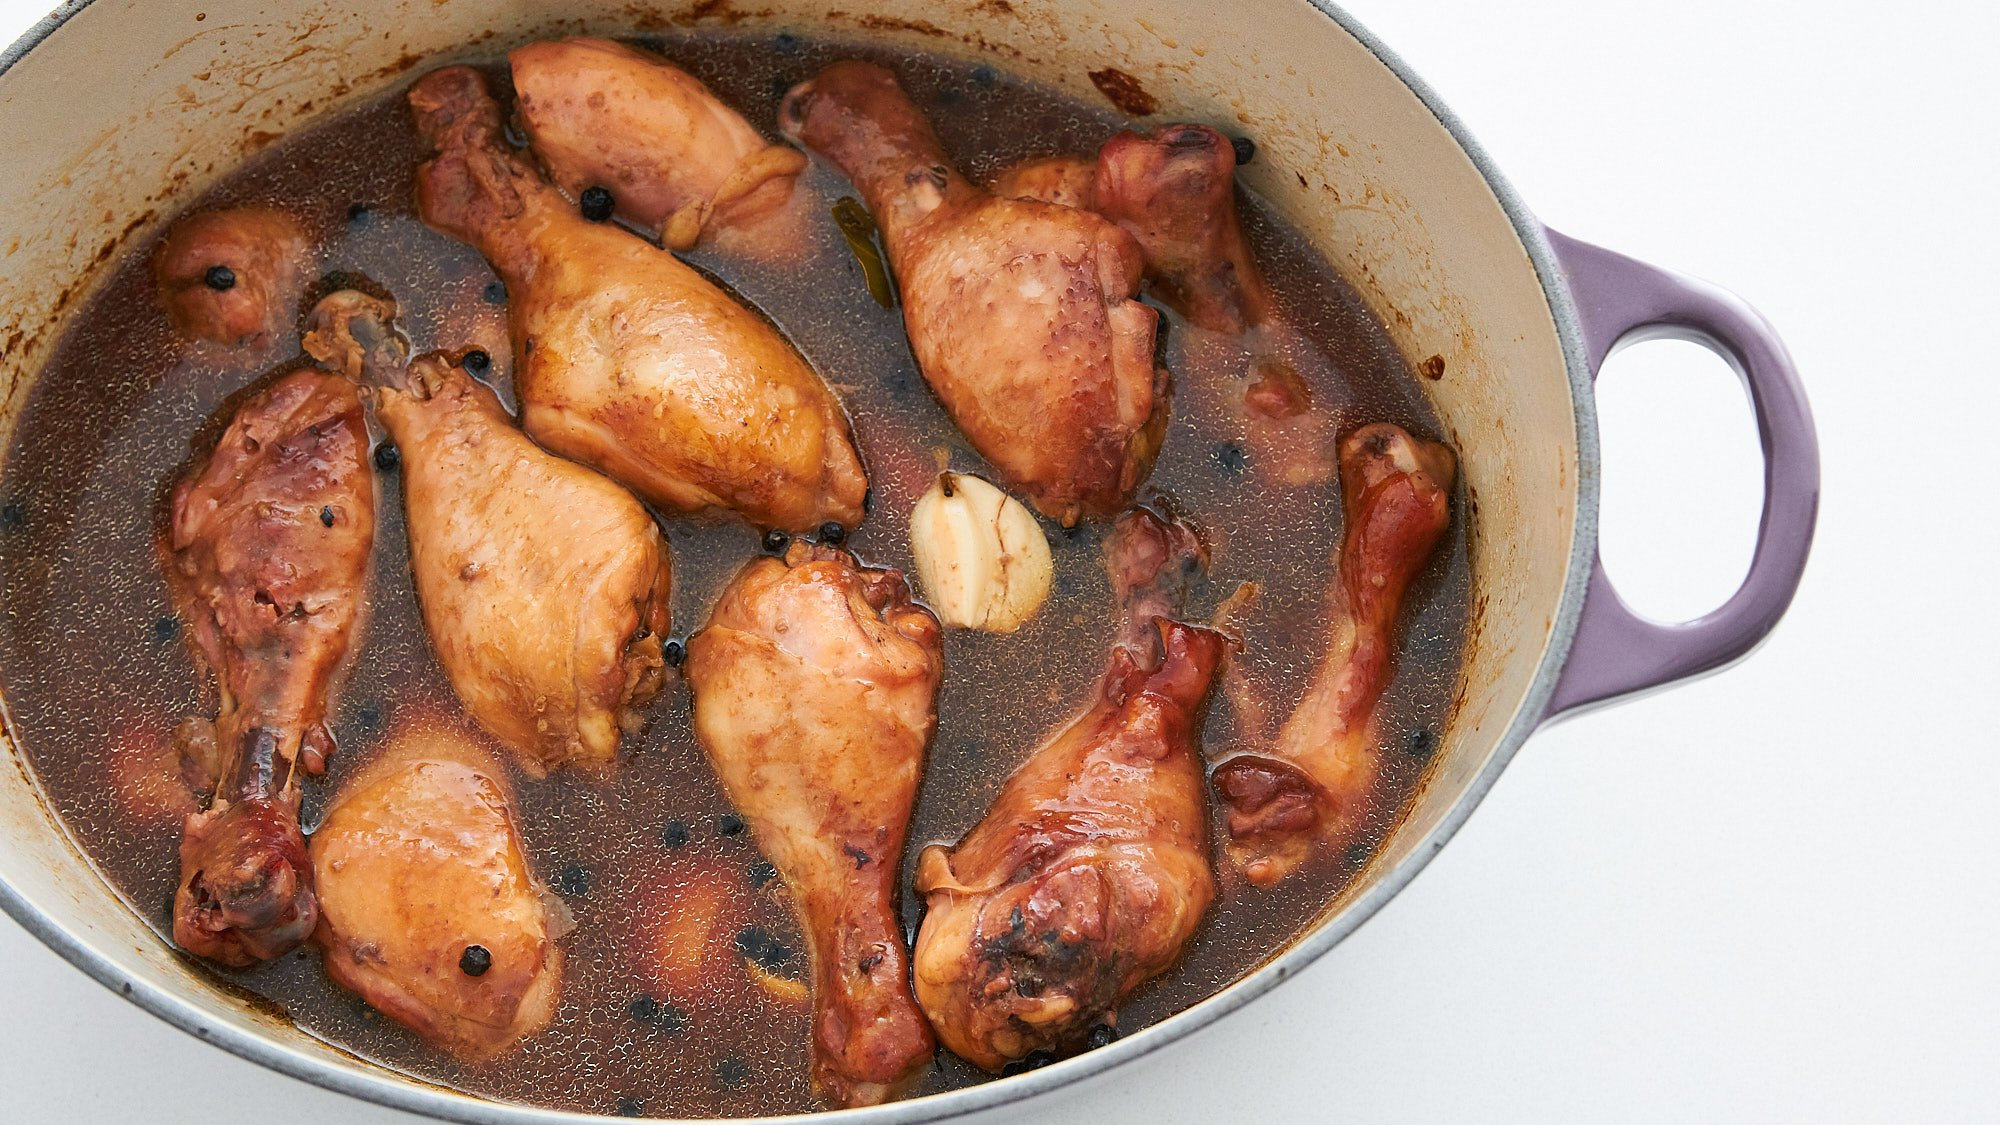 The chicken is tender and the adobo is almost done.